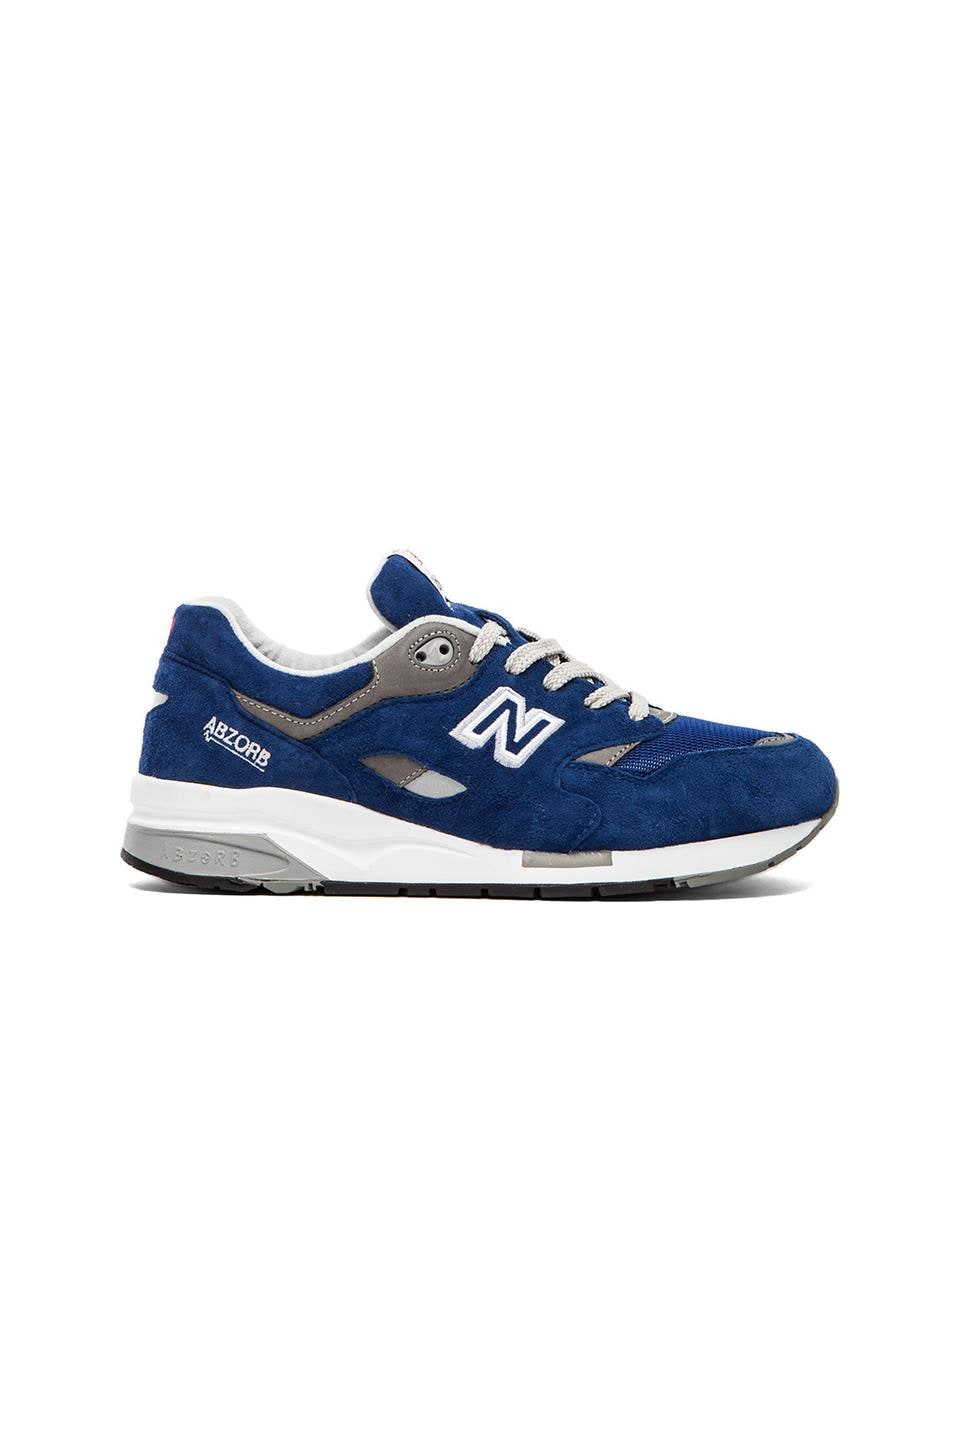 New Balance CM1600 in Blue